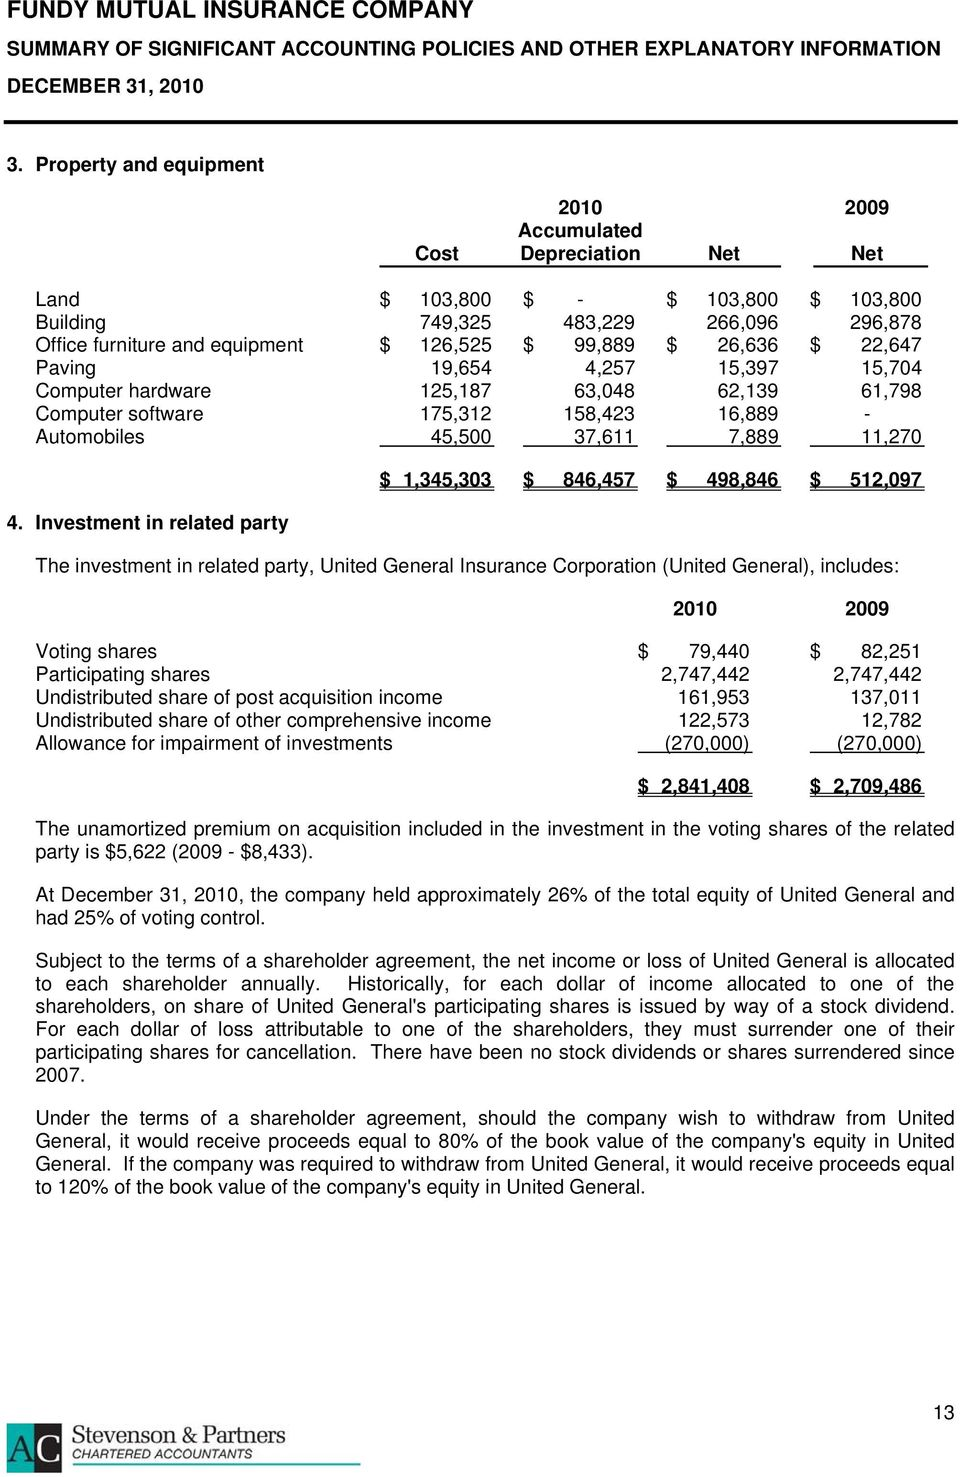 Investment in related party $ 1,345,303 $ 846,457 $ 498,846 $ 512,097 The investment in related party, United General Insurance Corporation (United General), includes: Voting shares $ 79,440 $ 82,251